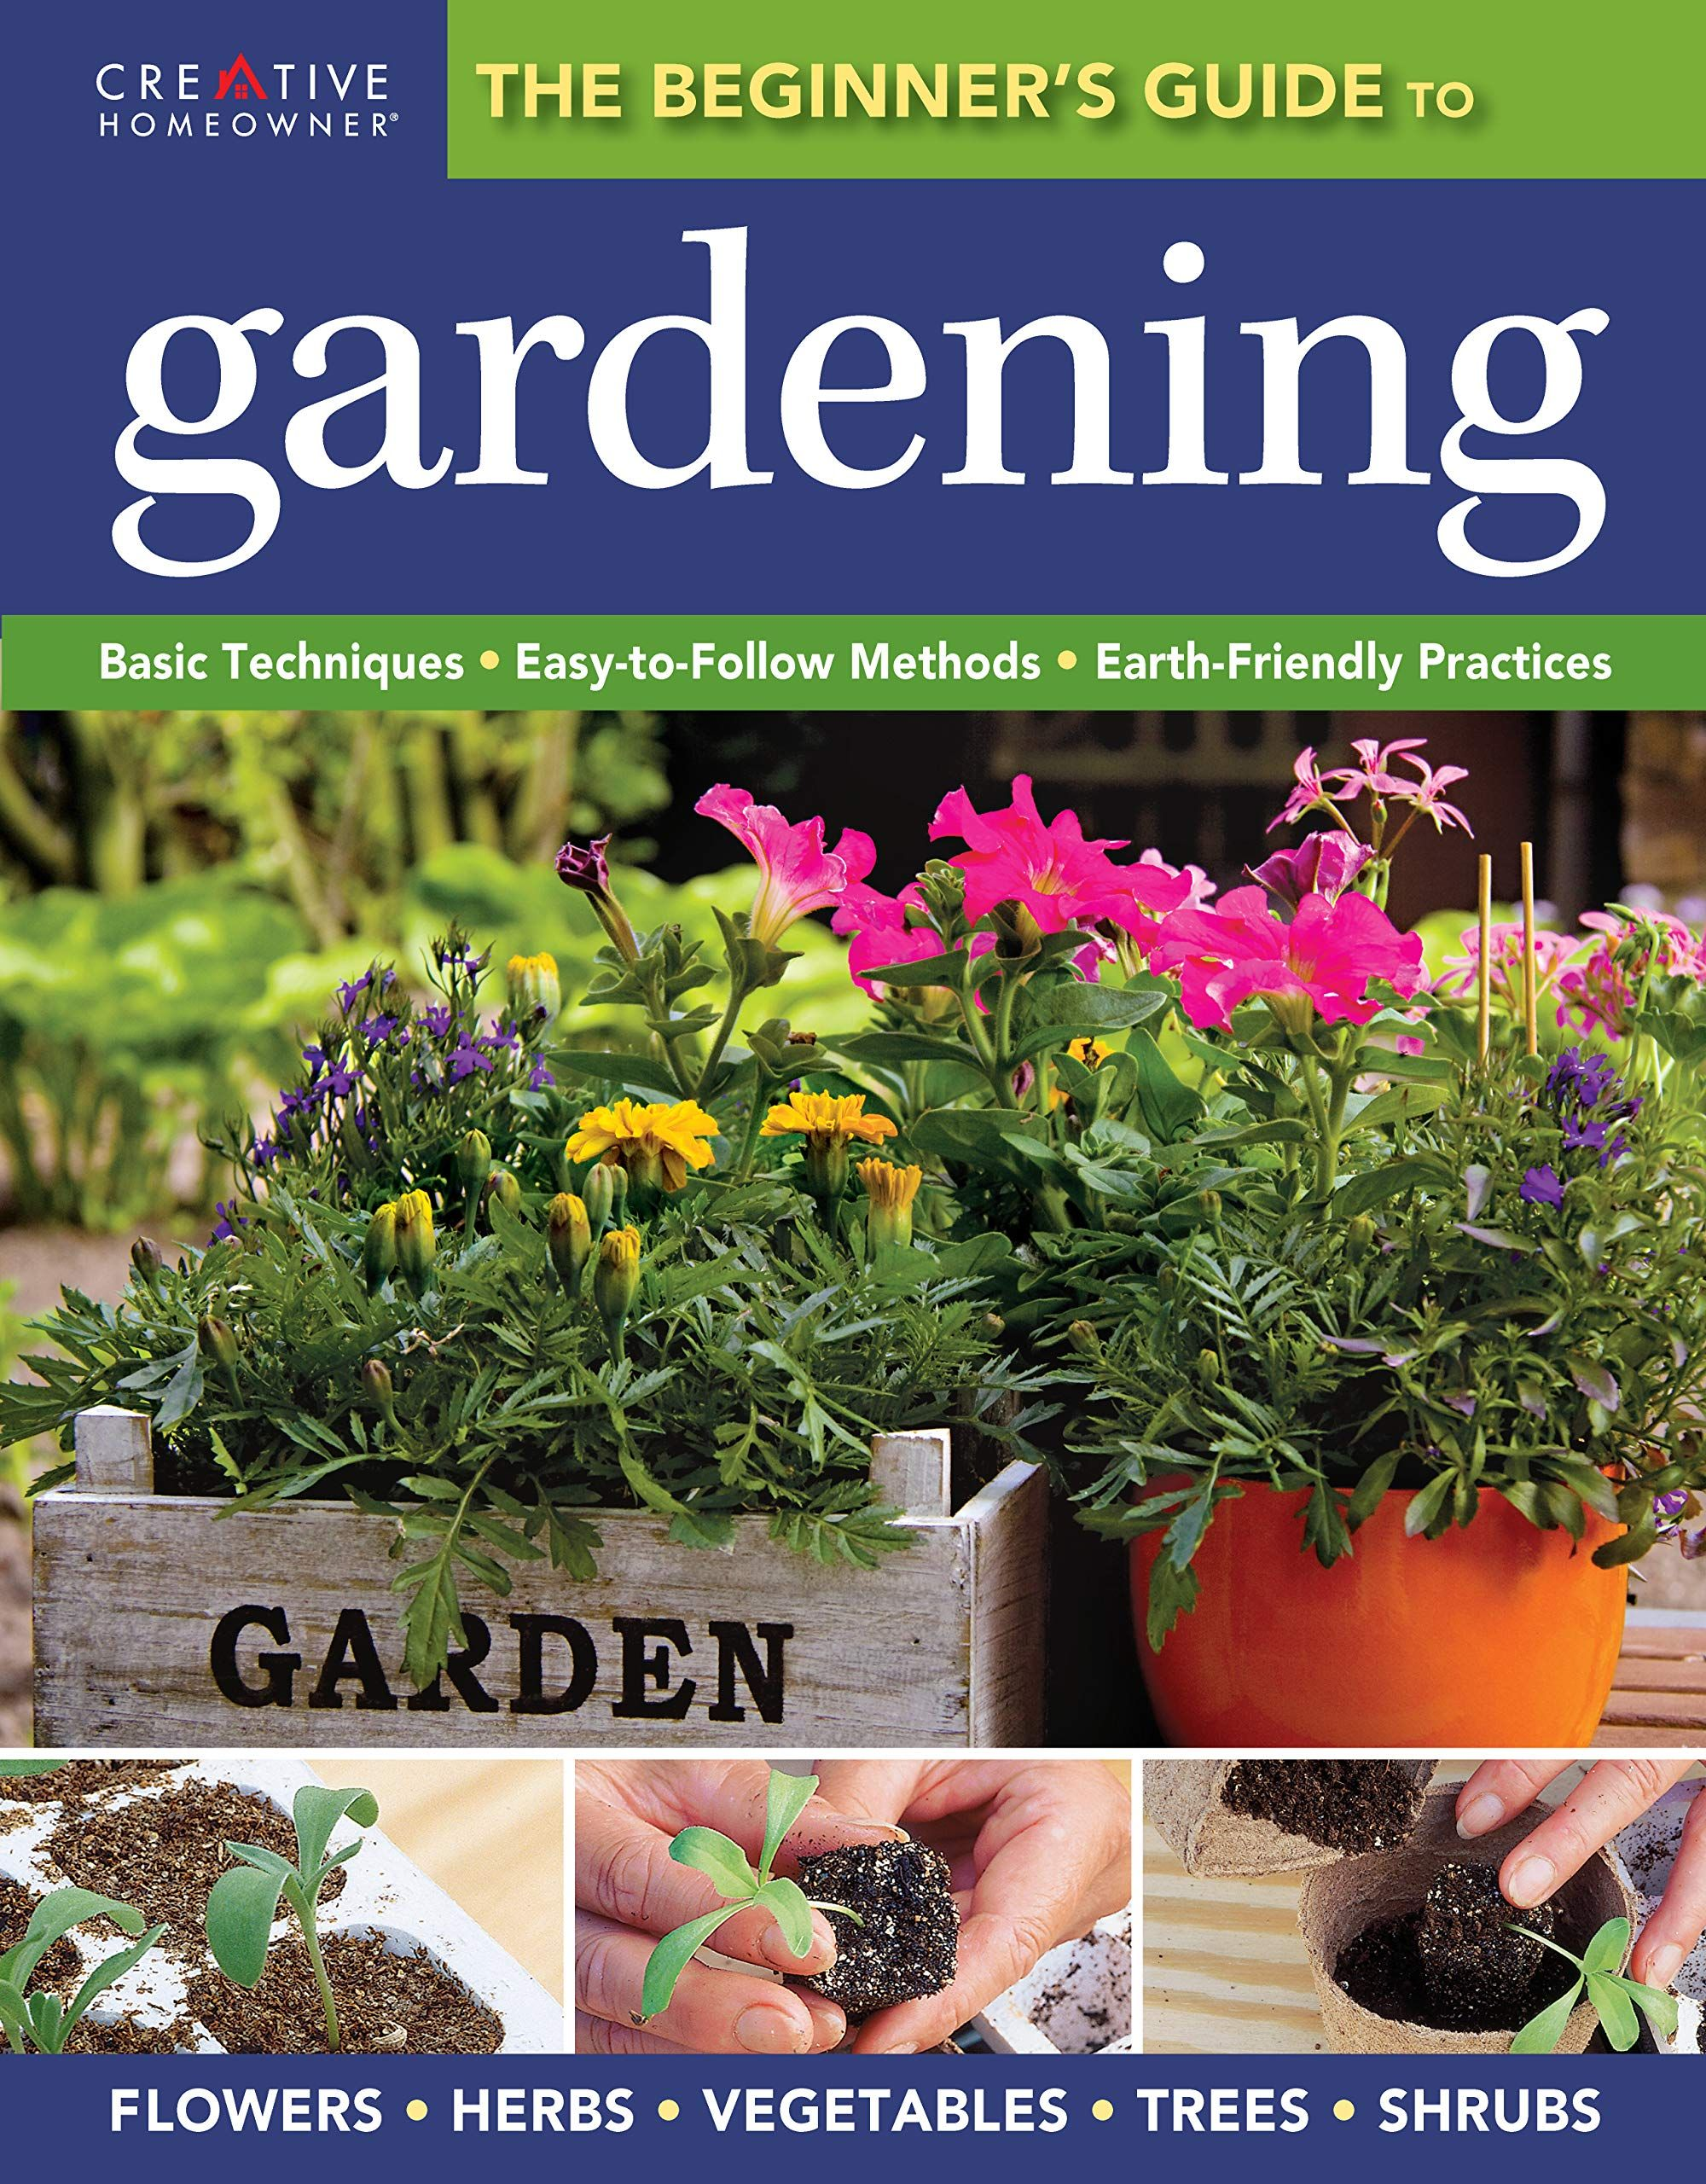 66a051fccdae0a713d75885dd77a3706 - What Are The Basic Gardening Techniques